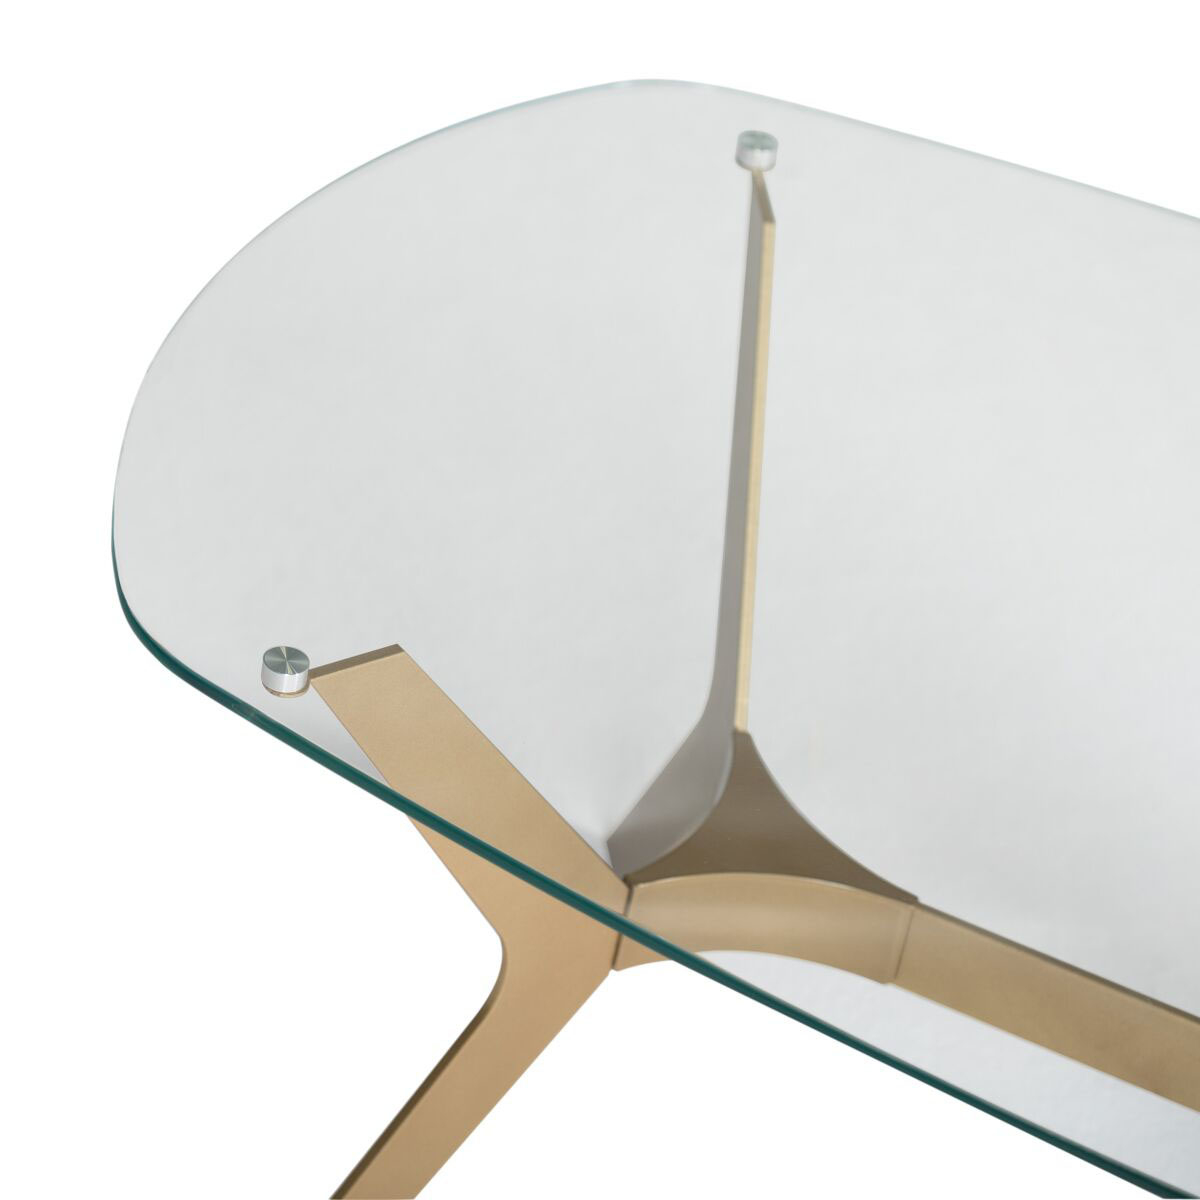 Studio Designs Archtech Modern Coffee Table 52 In Gold Clear Glass Coffee Tables Aliexpress